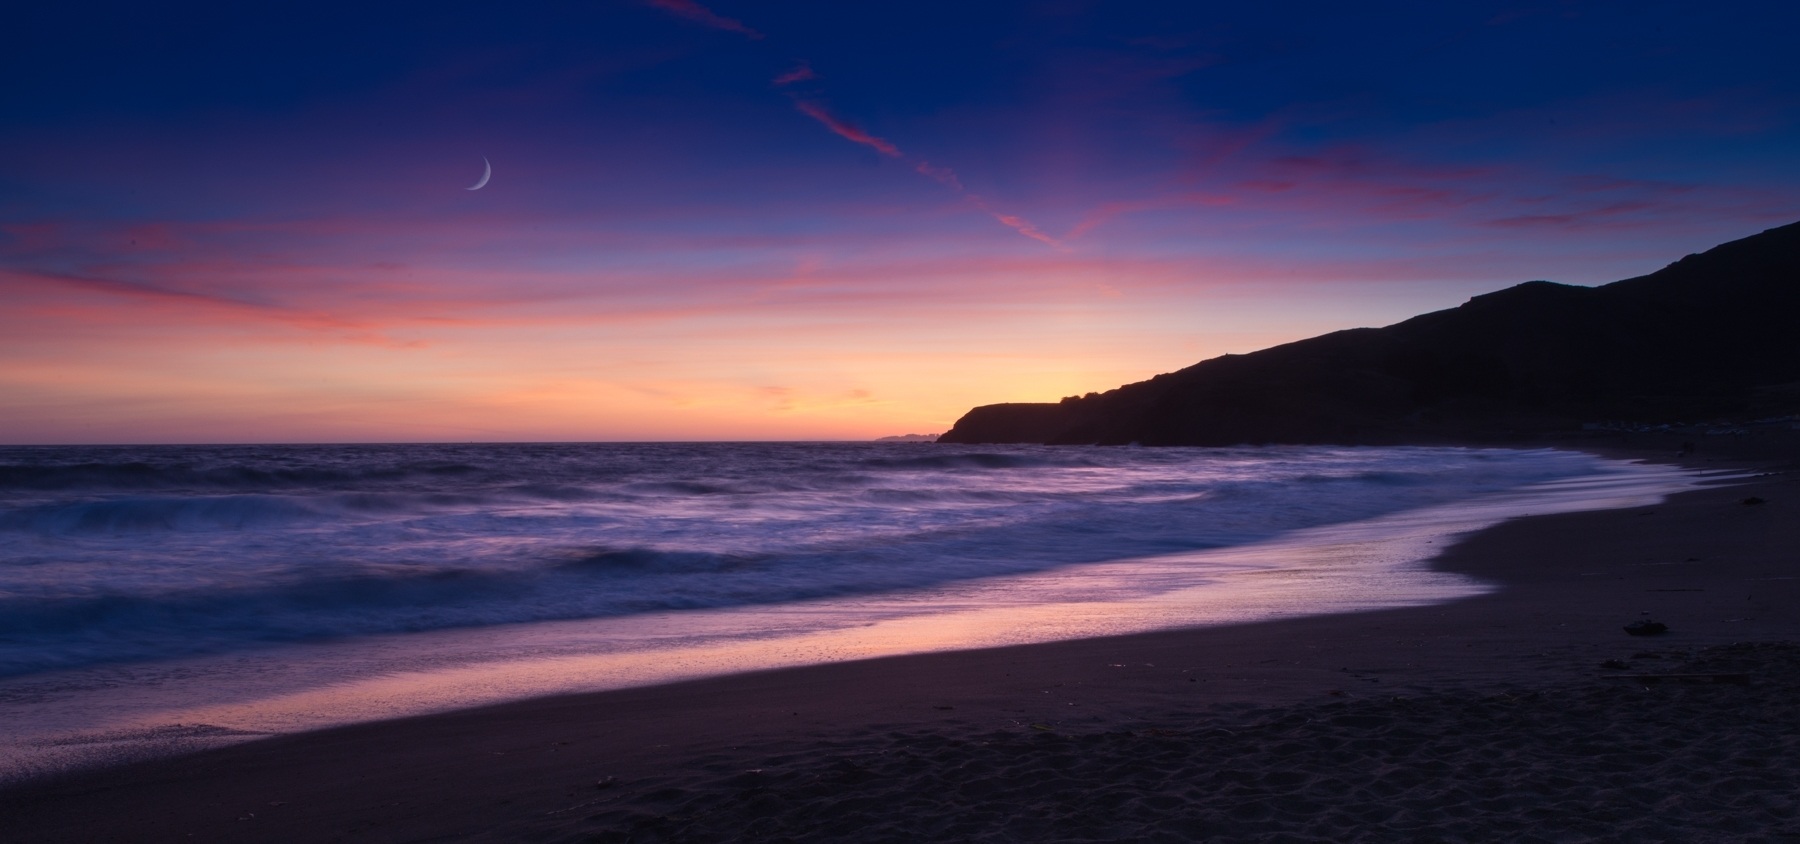 'Rodeo Beach Sunset' (PB 1 Place) by Dana Christensen - MR